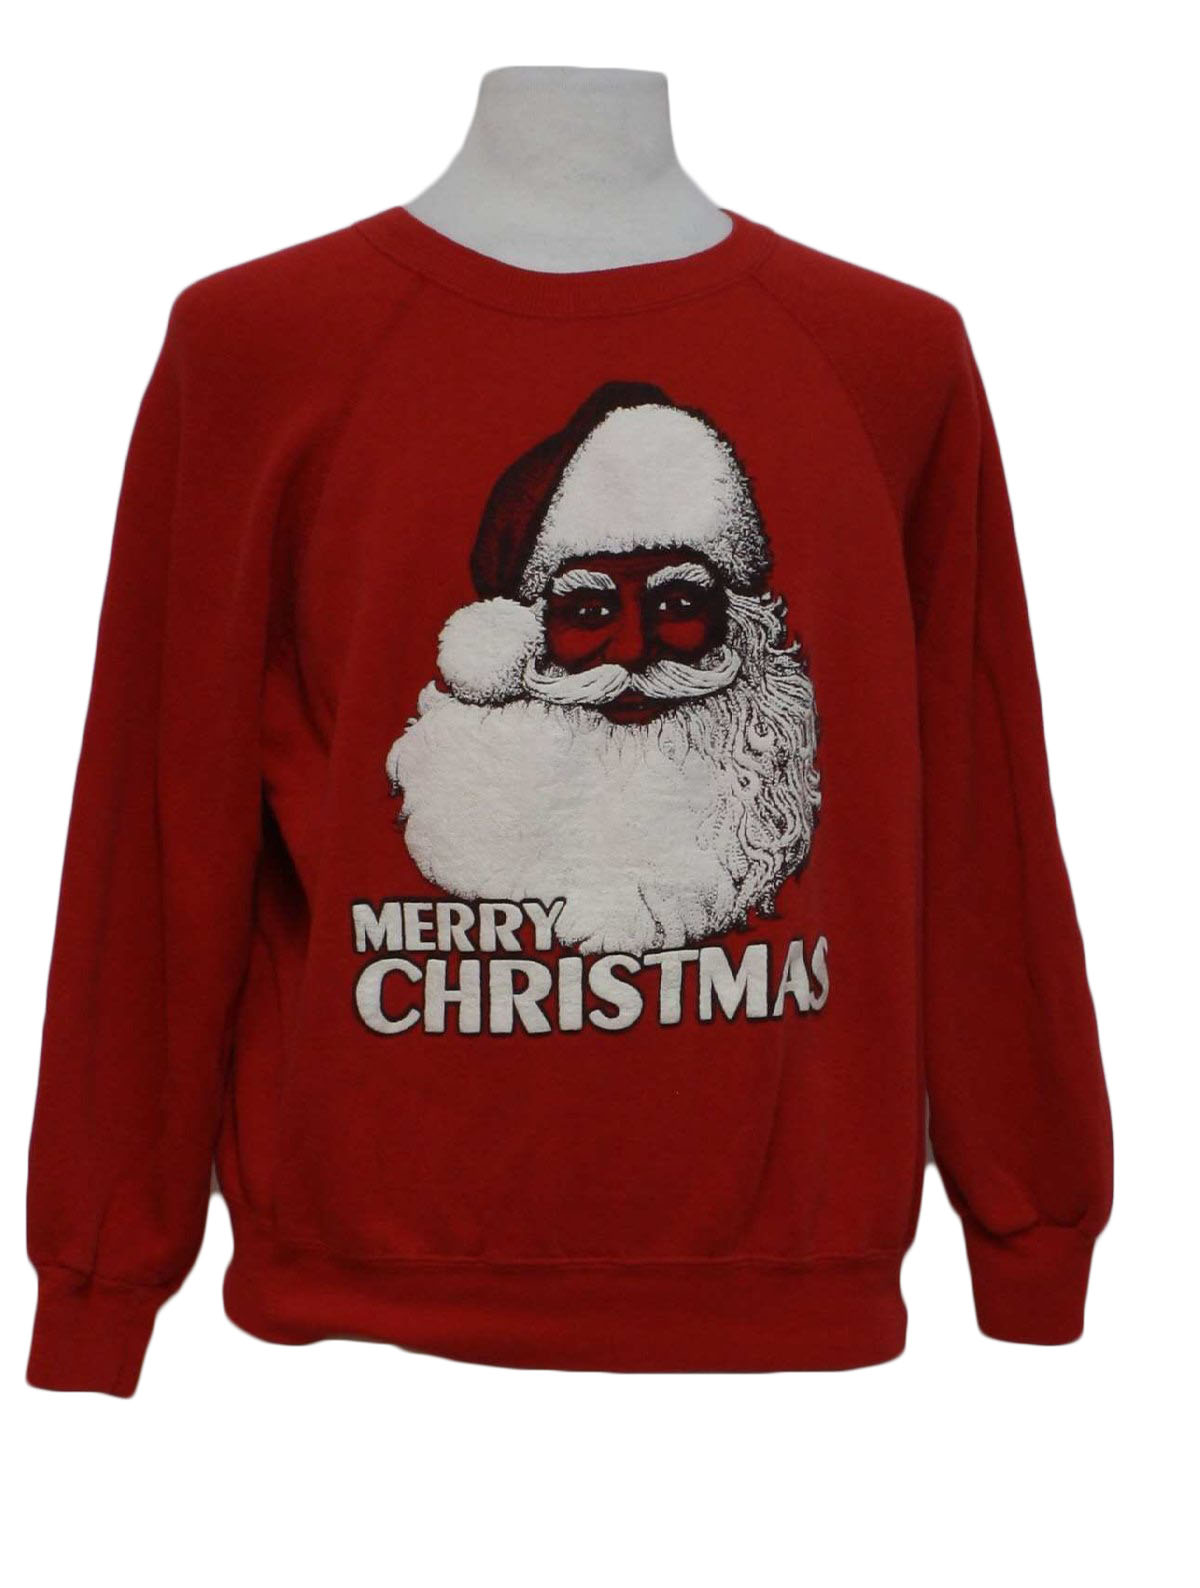 eighties black santa ugly christmas sweater sweatshirt 80s authentic vintage no label unisex red background ramie cotton blend long sleeve pullover ugly